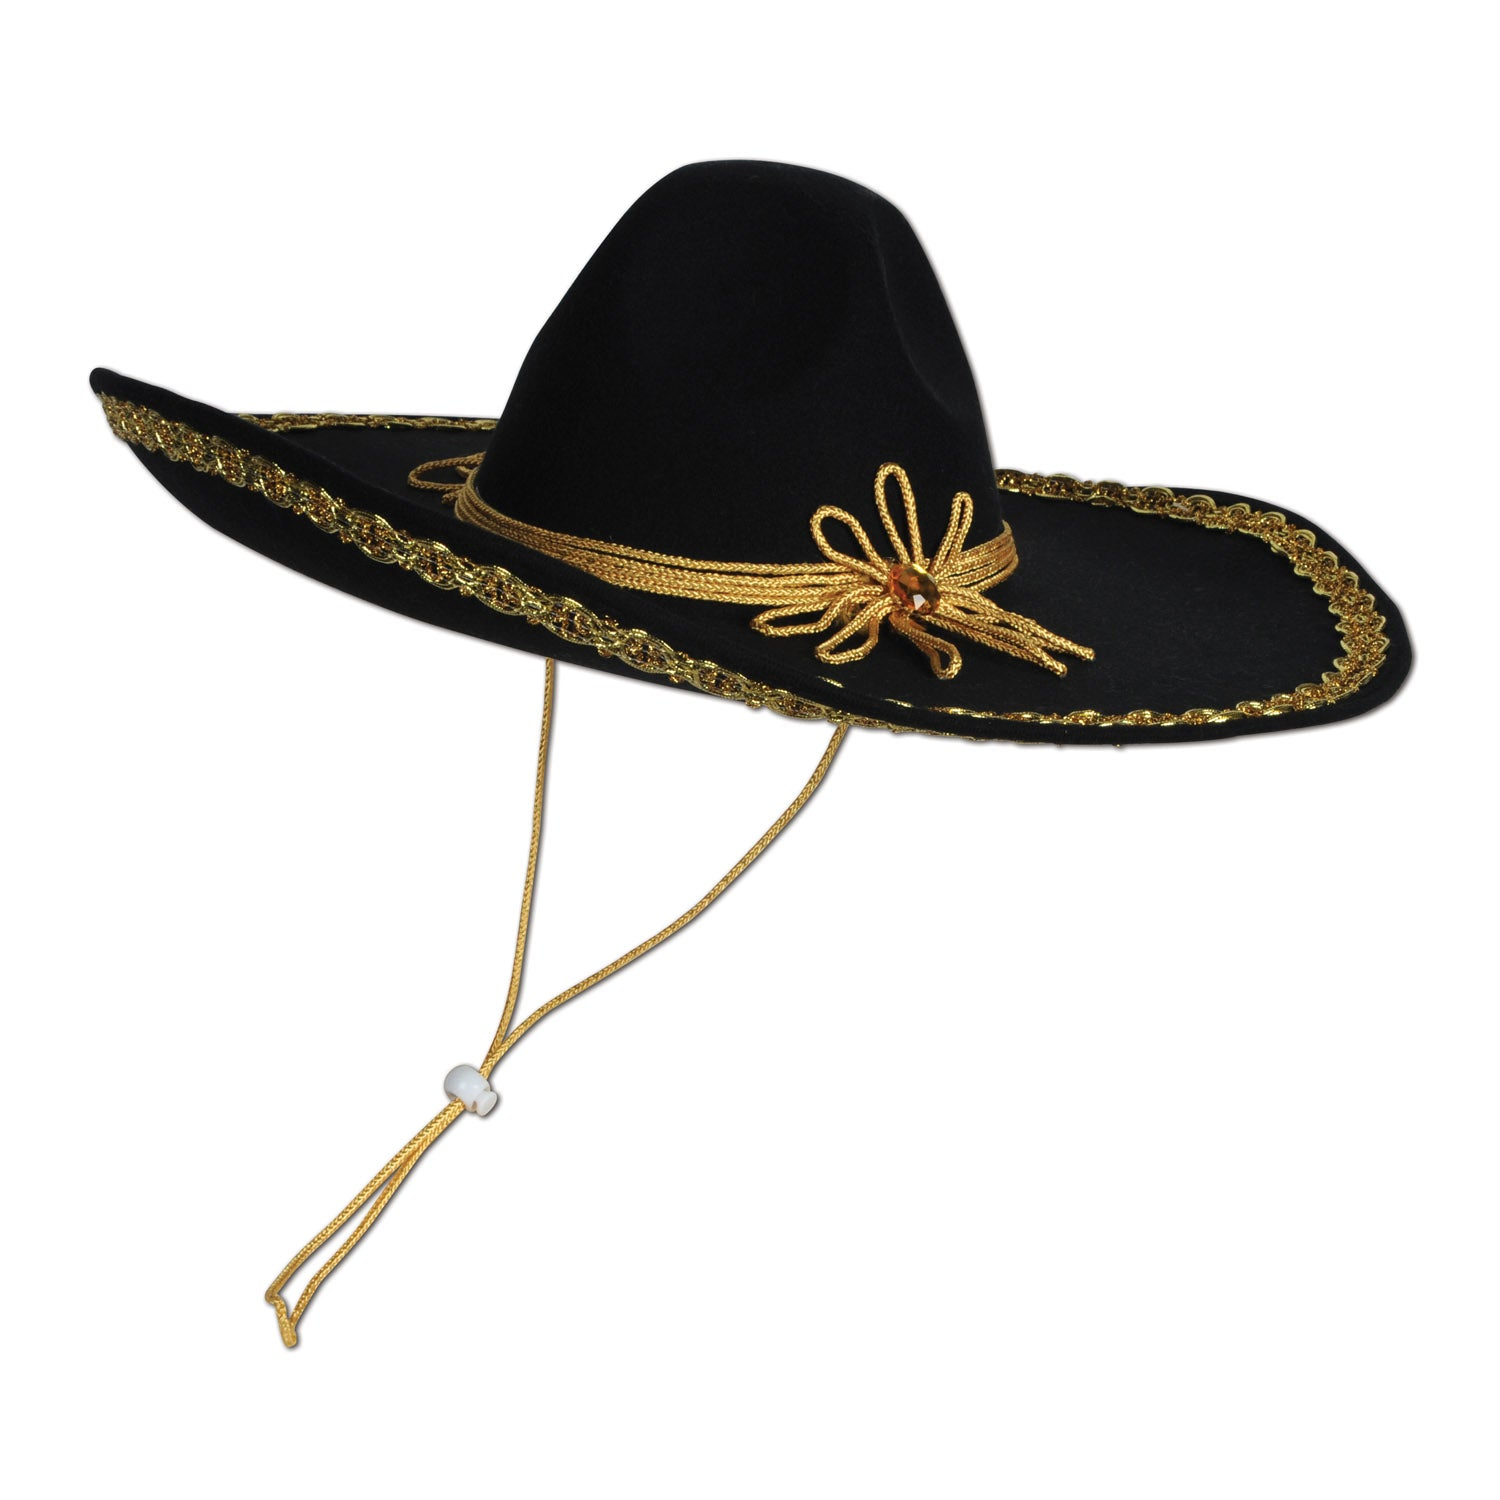 Felt Sombrero by Beistle - Cinco de Mayo and Fiesta Party Supplies Decorations